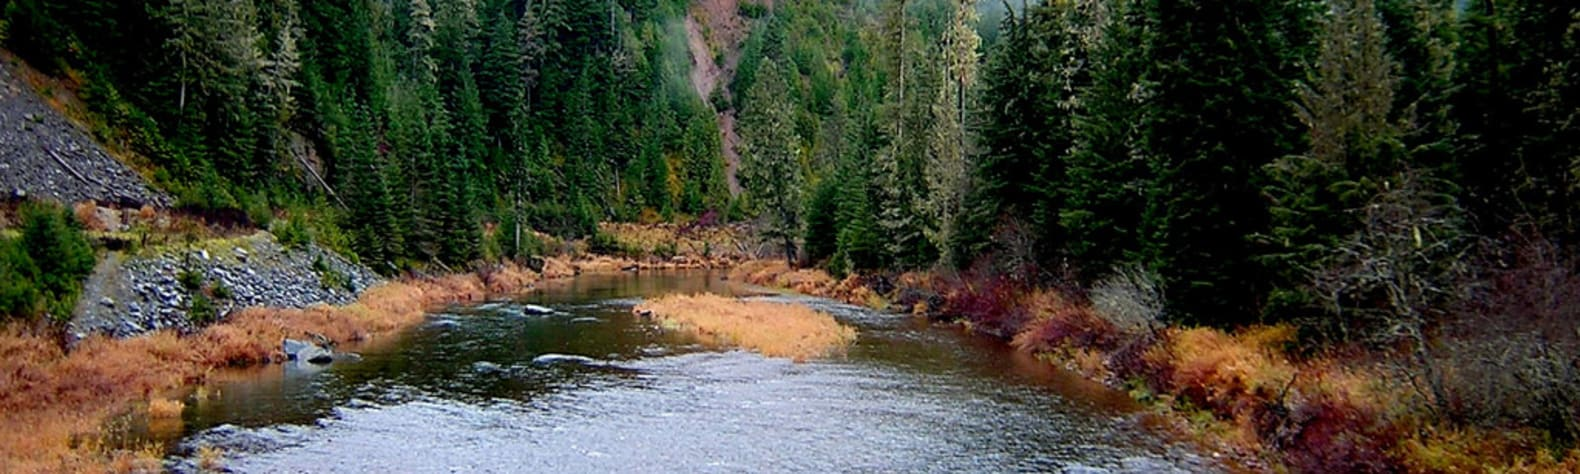 Best Camping in and Near Coeur d'Alene River Campground and